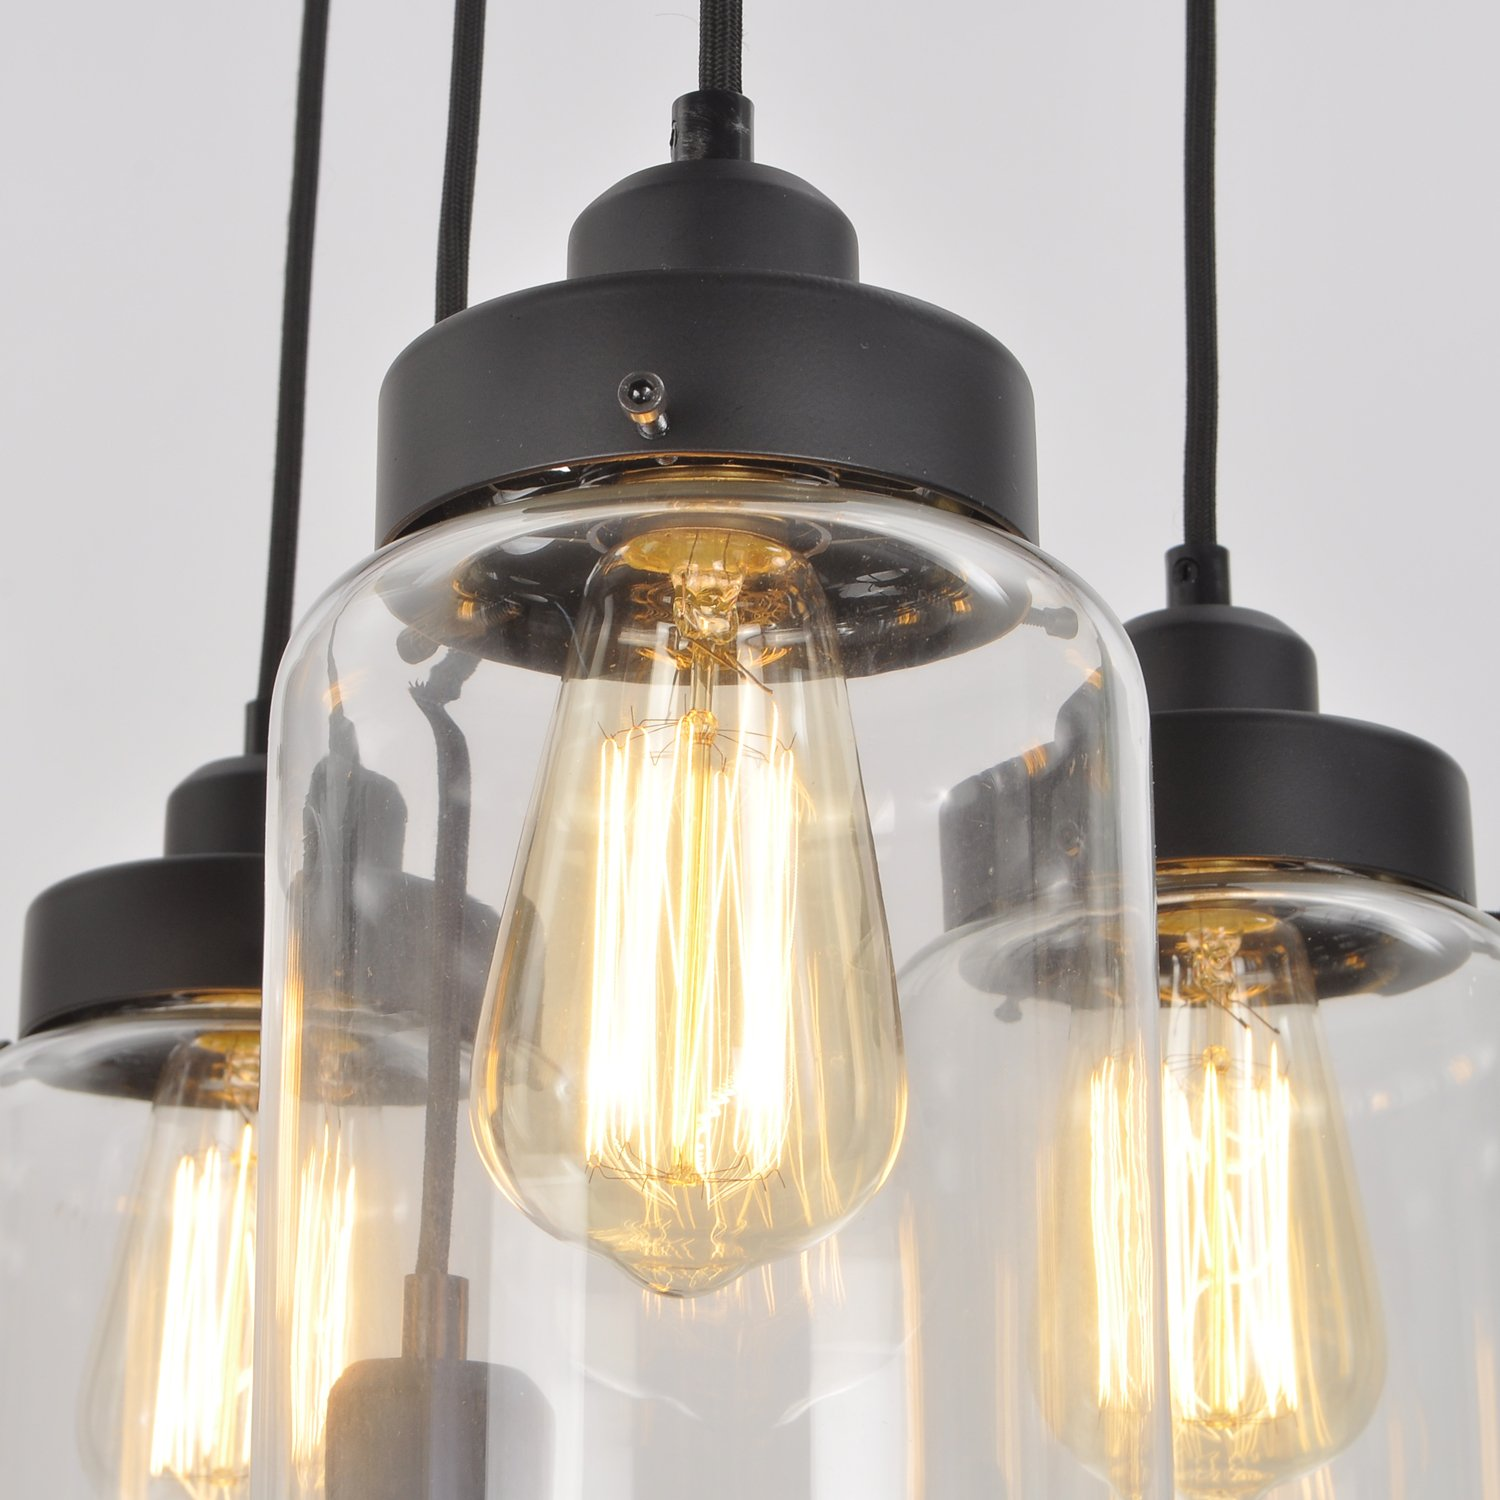 vintage lighting pendants. UNITARY BRAND Vintage Large Glass Jar Pendant Light Max 300W With 5 Lights Painted Finish - Amazon.com Lighting Pendants O